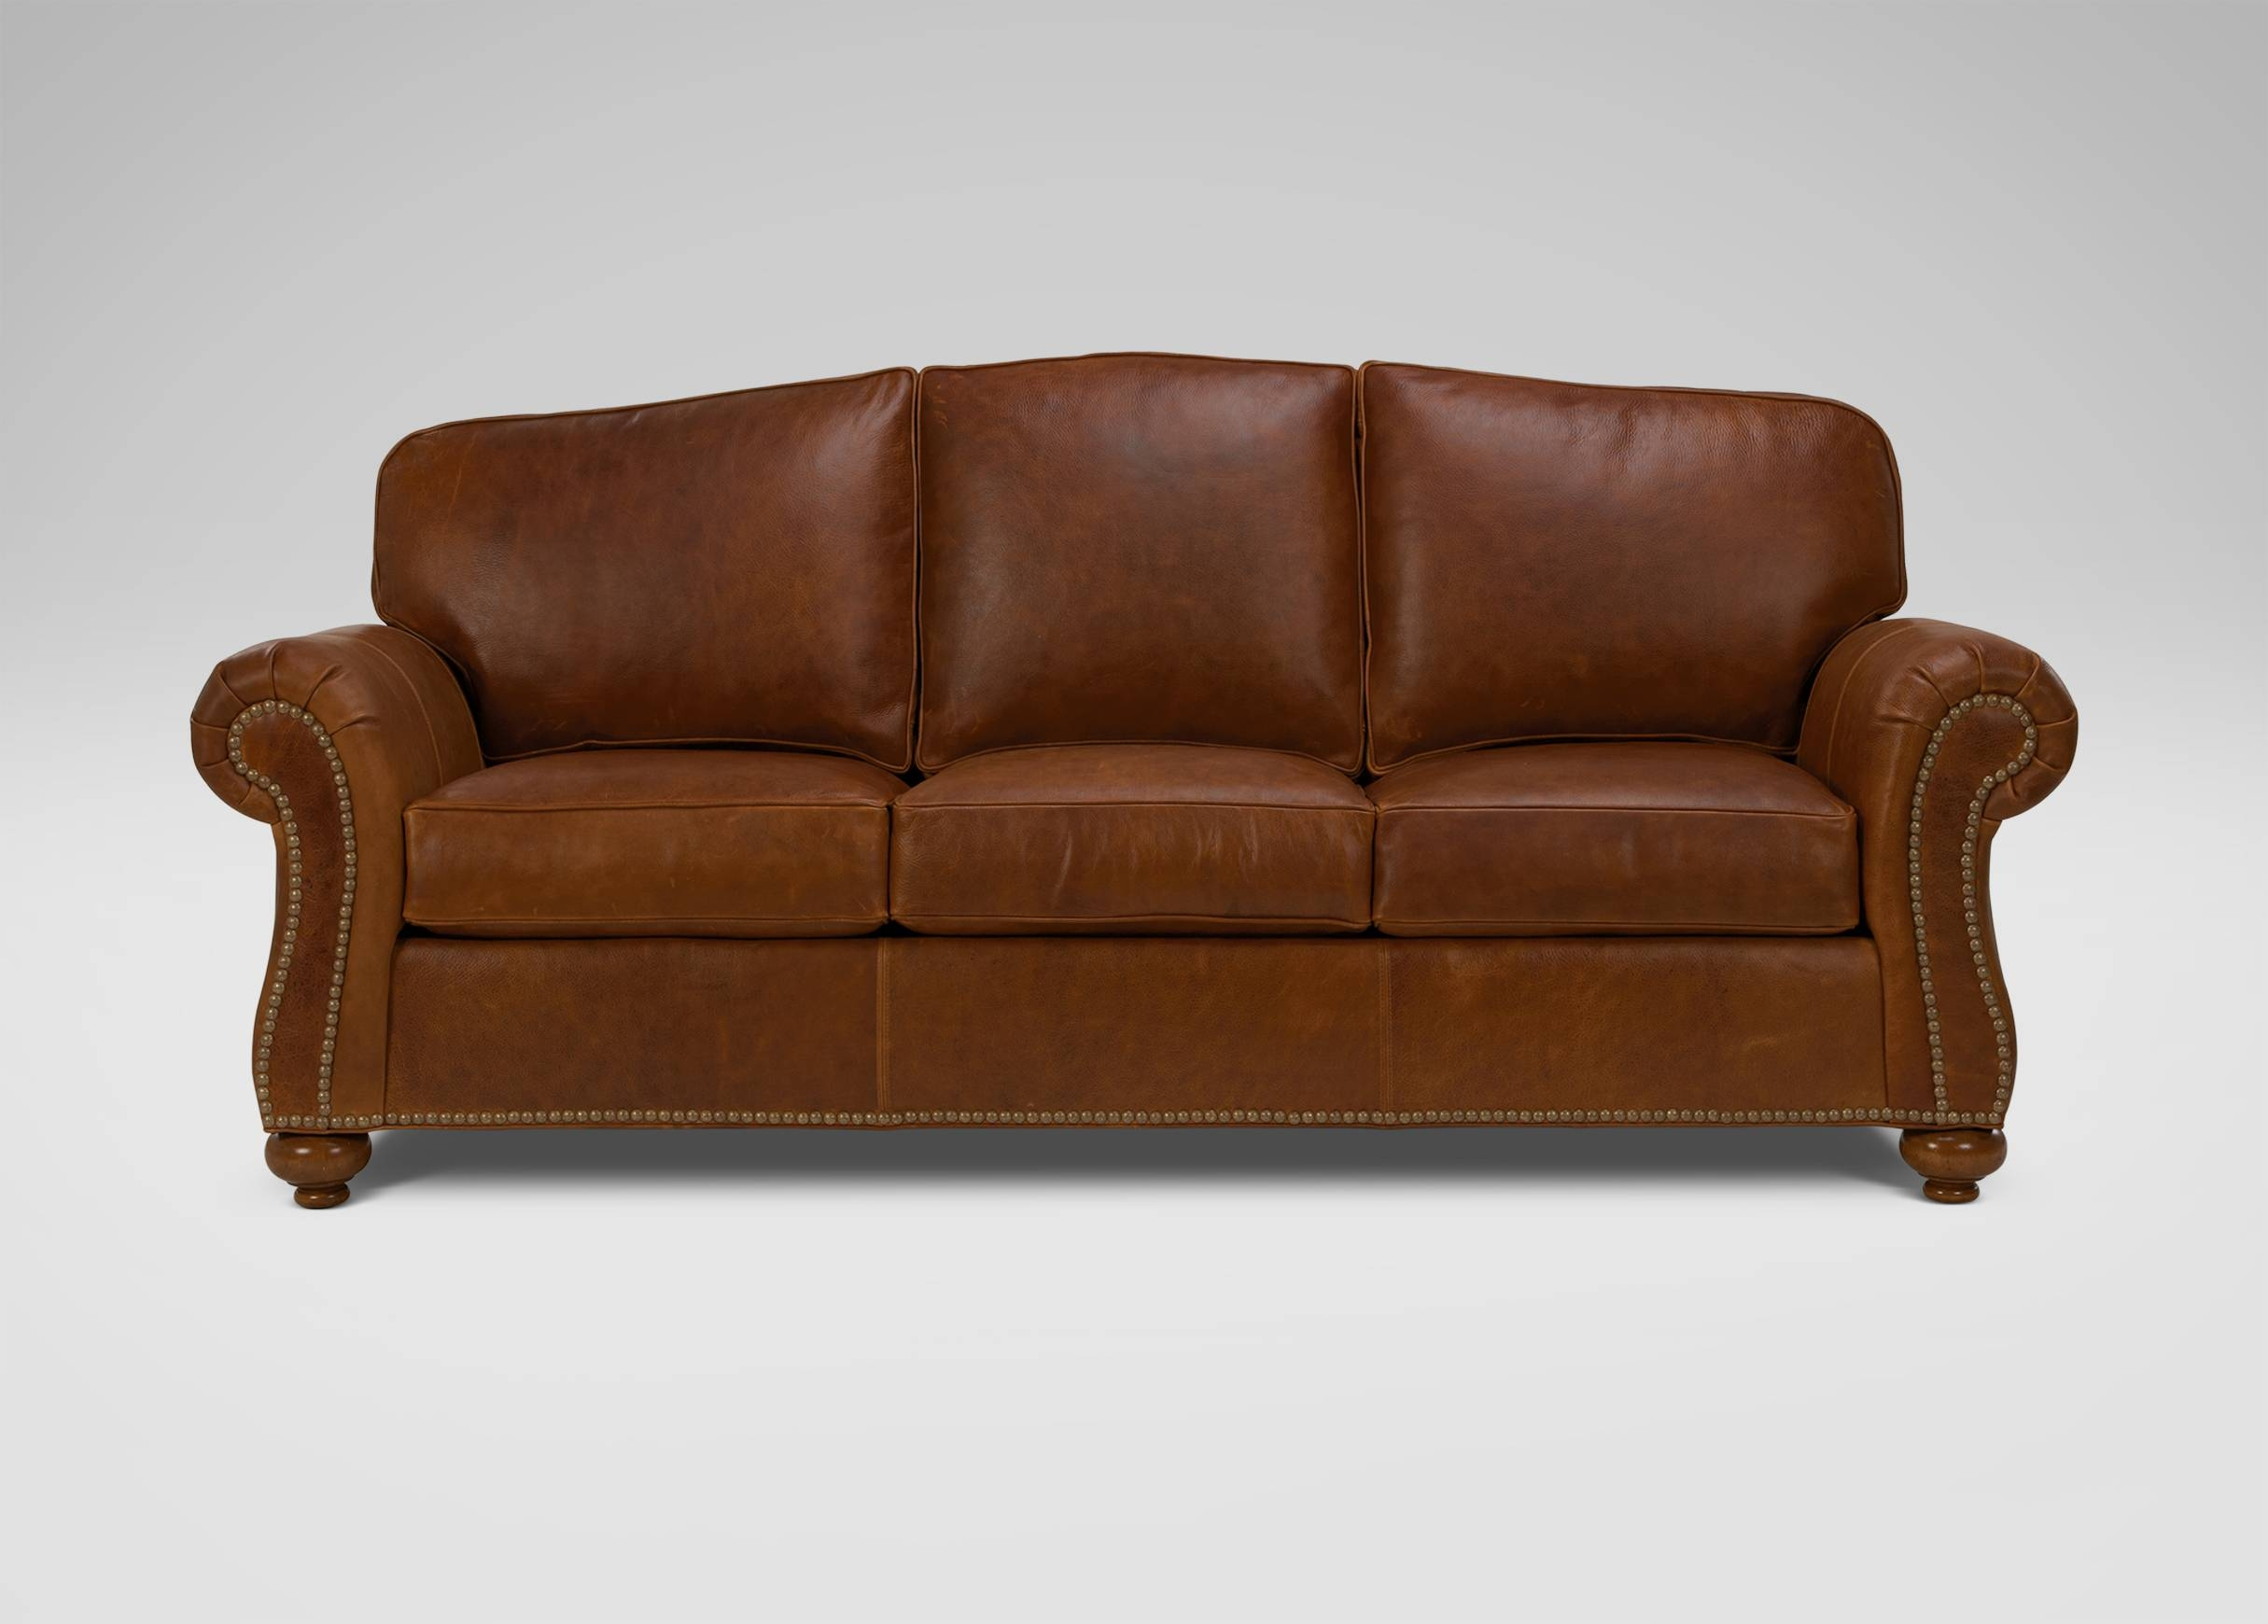 Whitney Leather Sofa | Sofas & Loveseats within Ethan Allen Whitney Sofas (Image 14 of 15)